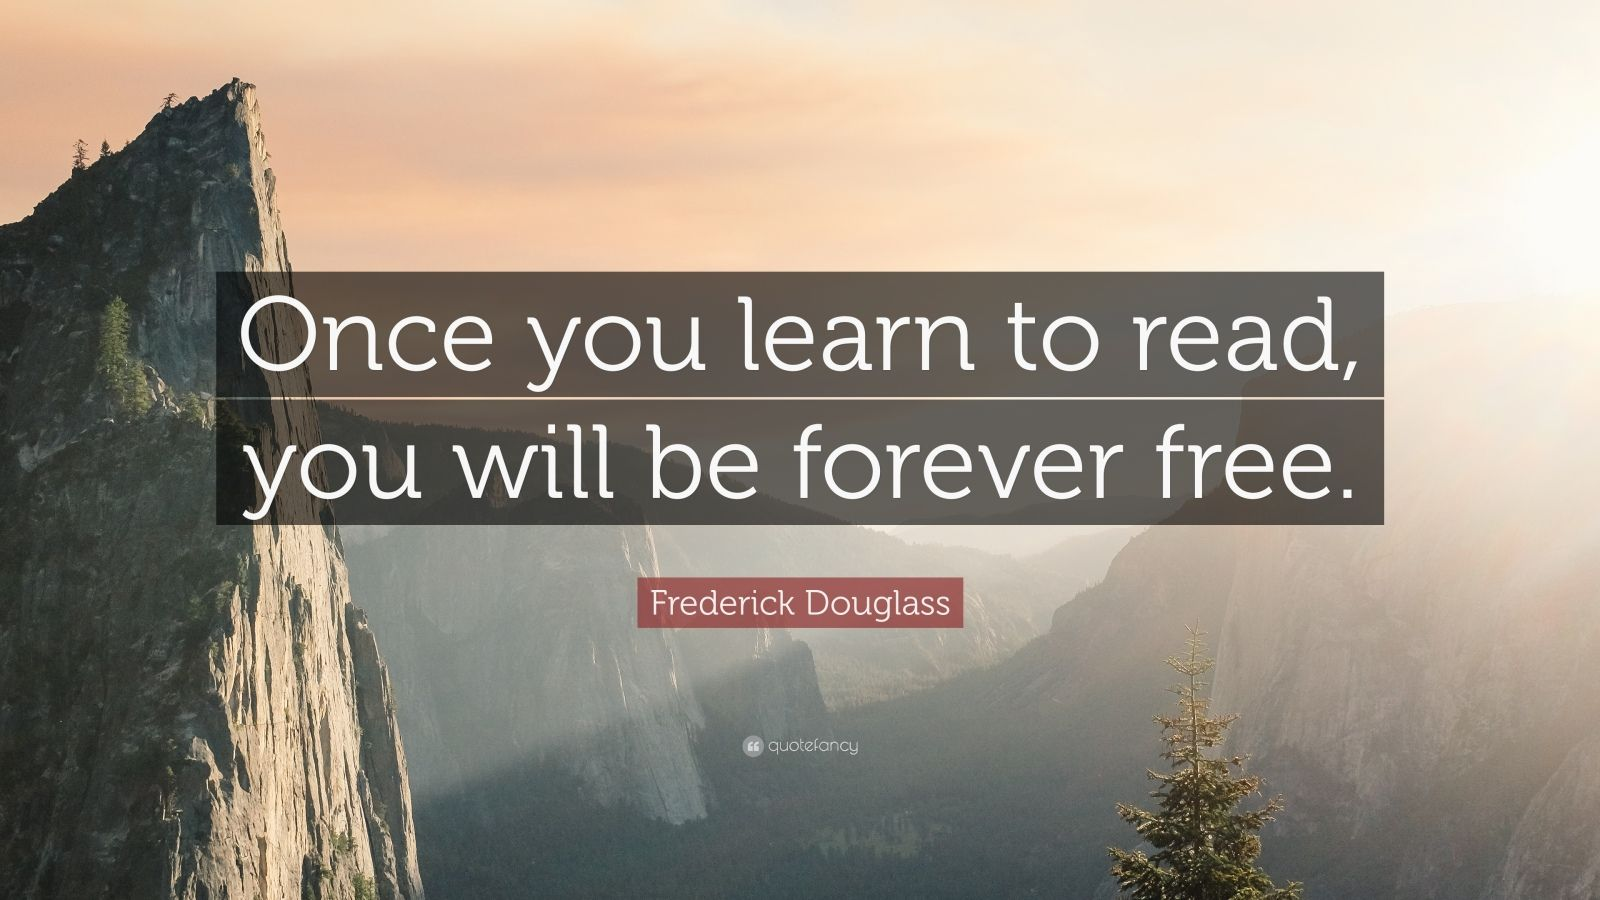 frederick douglass quotes quotefancy frederick douglass quote ldquoonce you learn to you will be forever